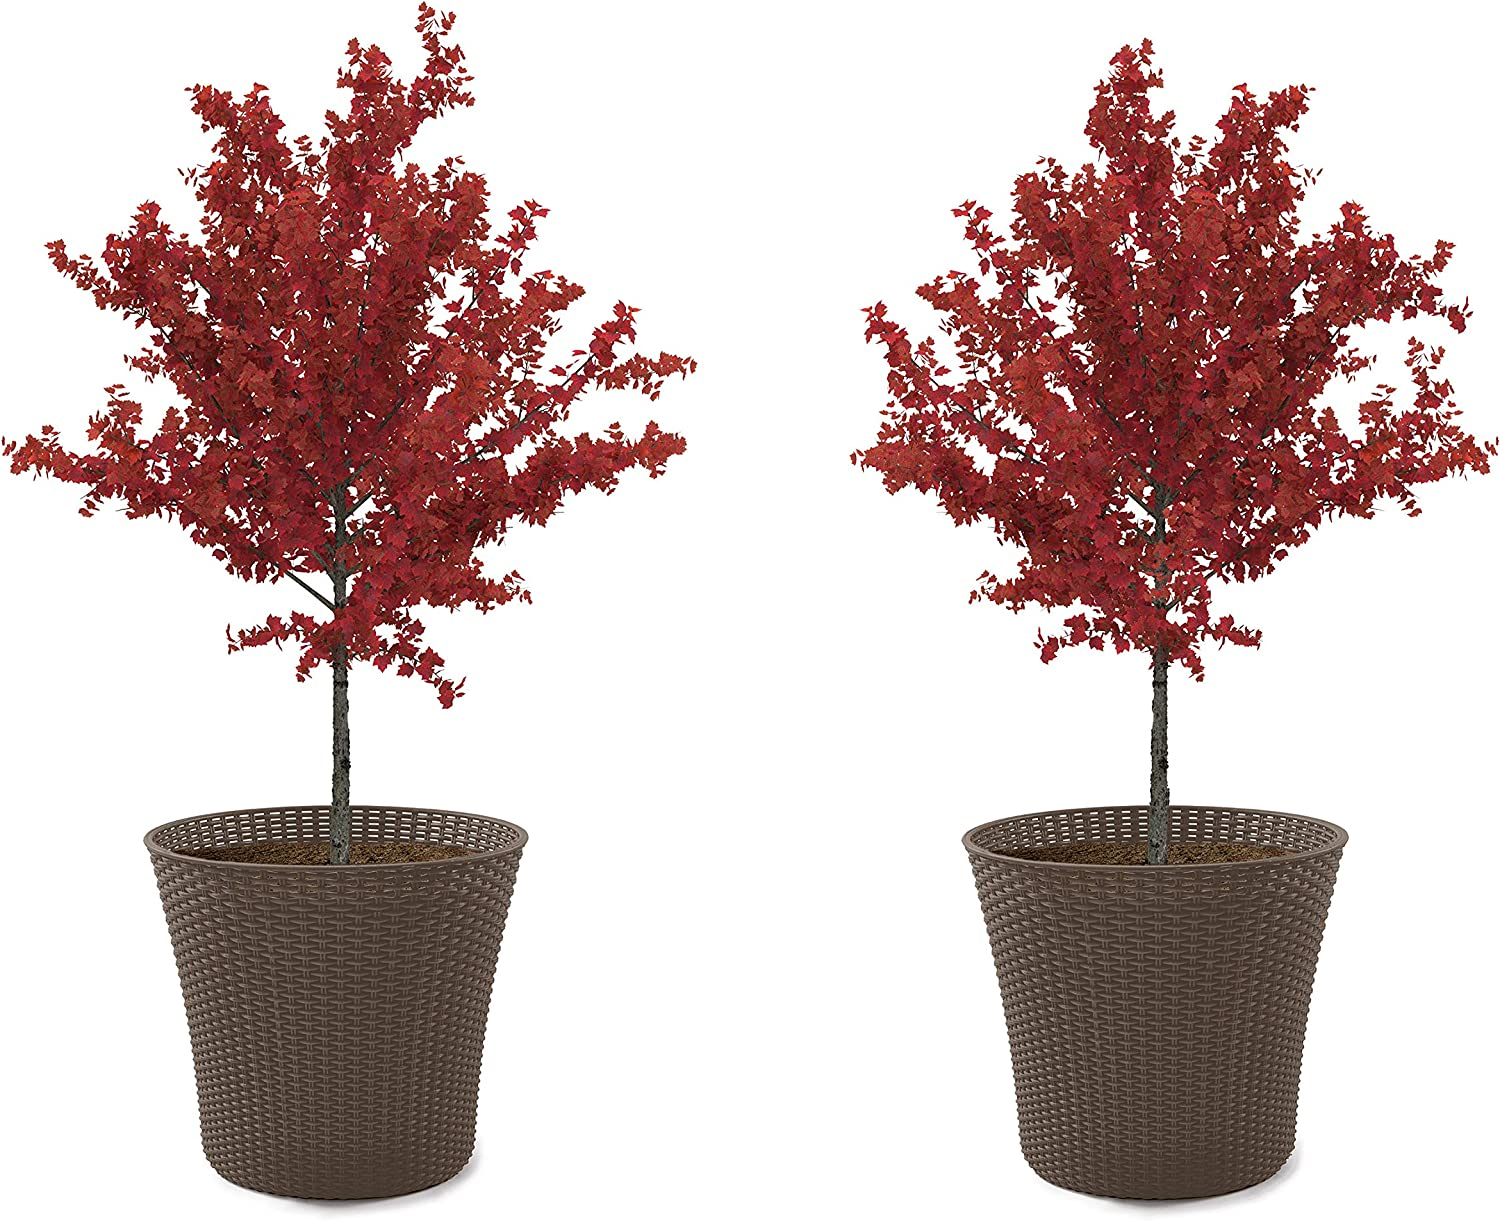 Keter Resin Wicker 15 Gallon Conic Flower Pot Set of 2 Large Planters